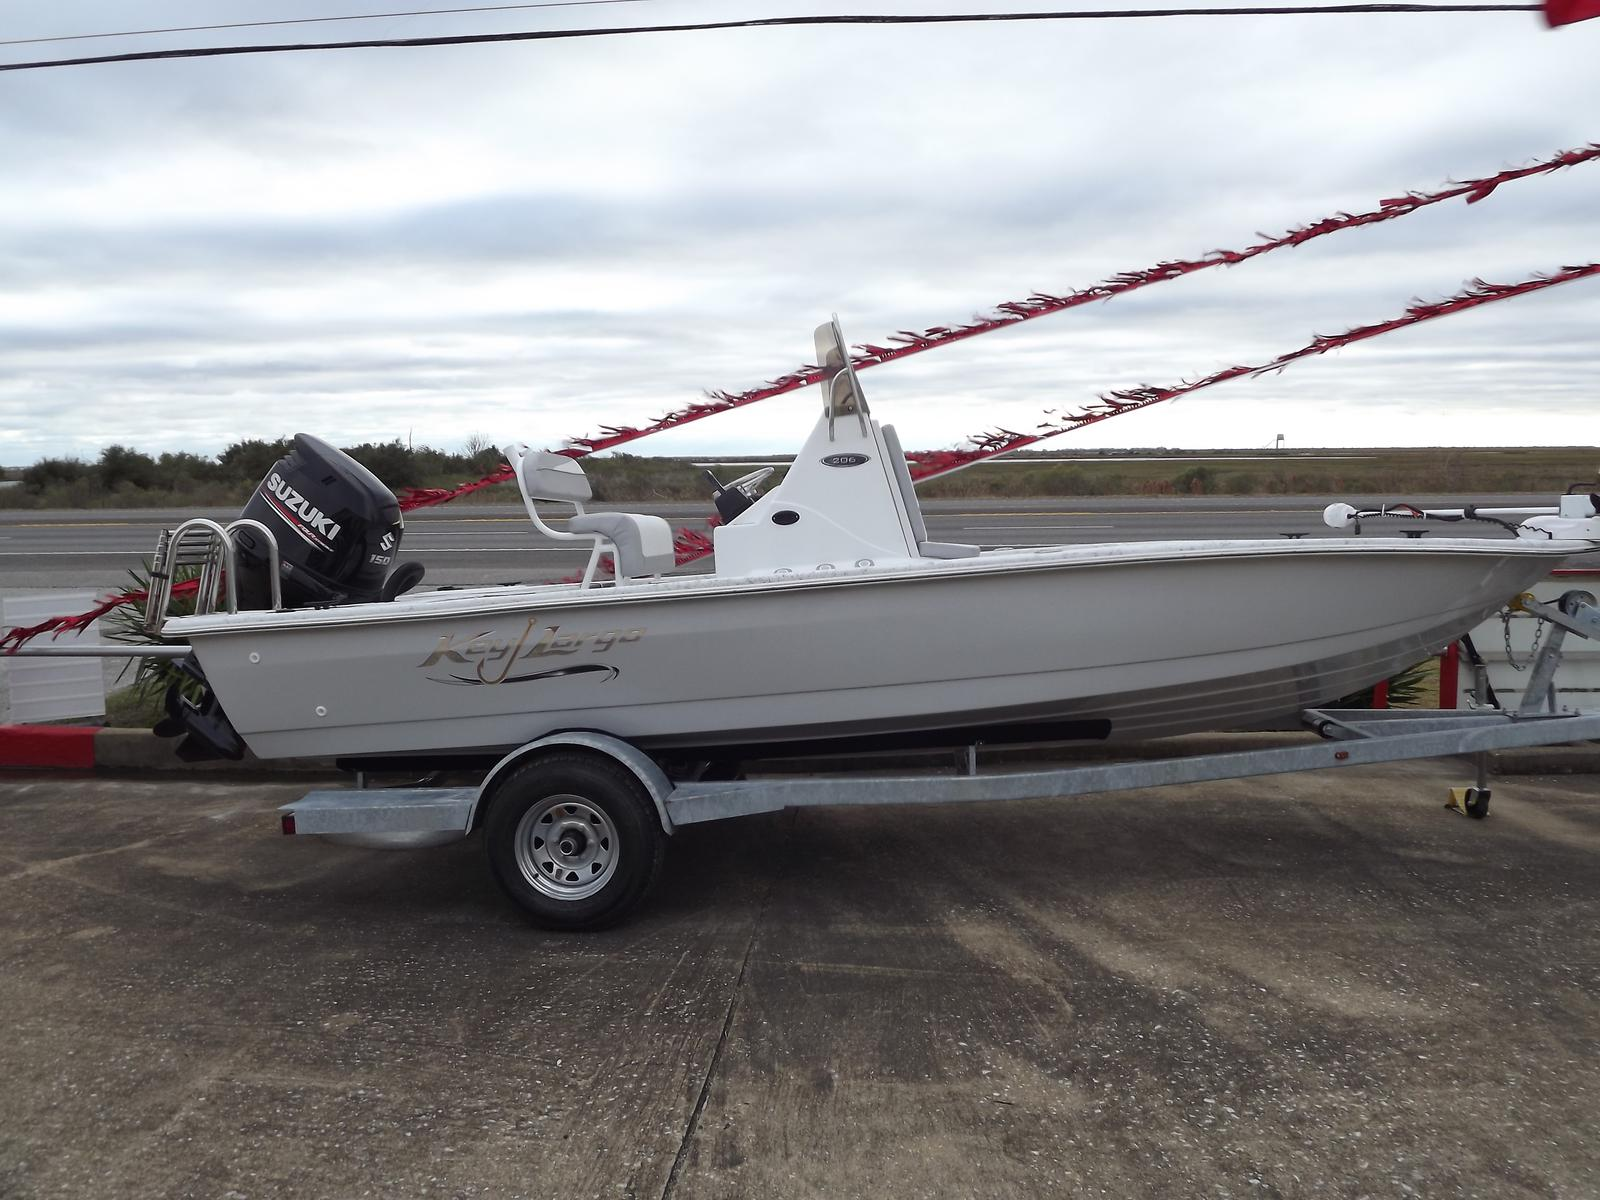 In Stock New And Used Models For Sale In Hitchcock Tx Finish Line Marine Hitchcock Tx 409 938 4408